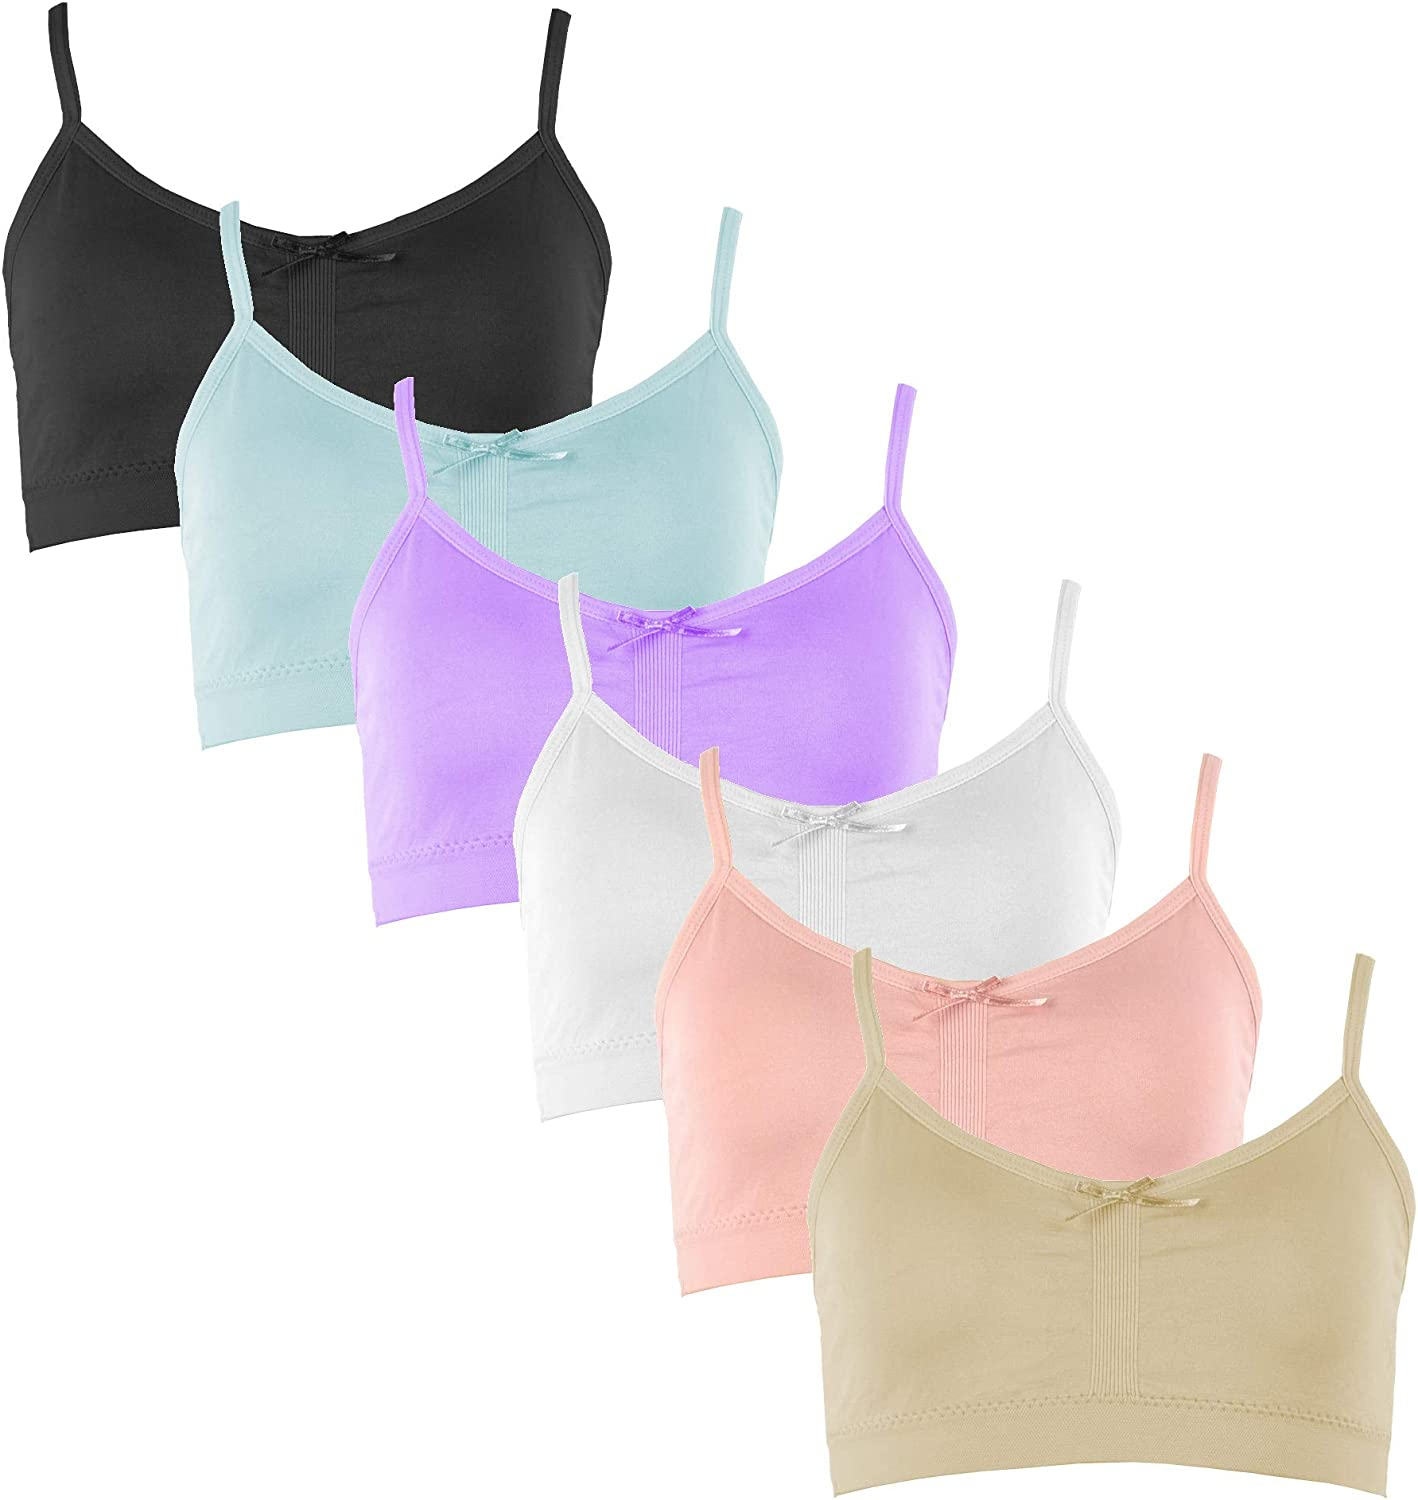 Value Pack Popular Girls Seamless Cami Bra with Removable Padding